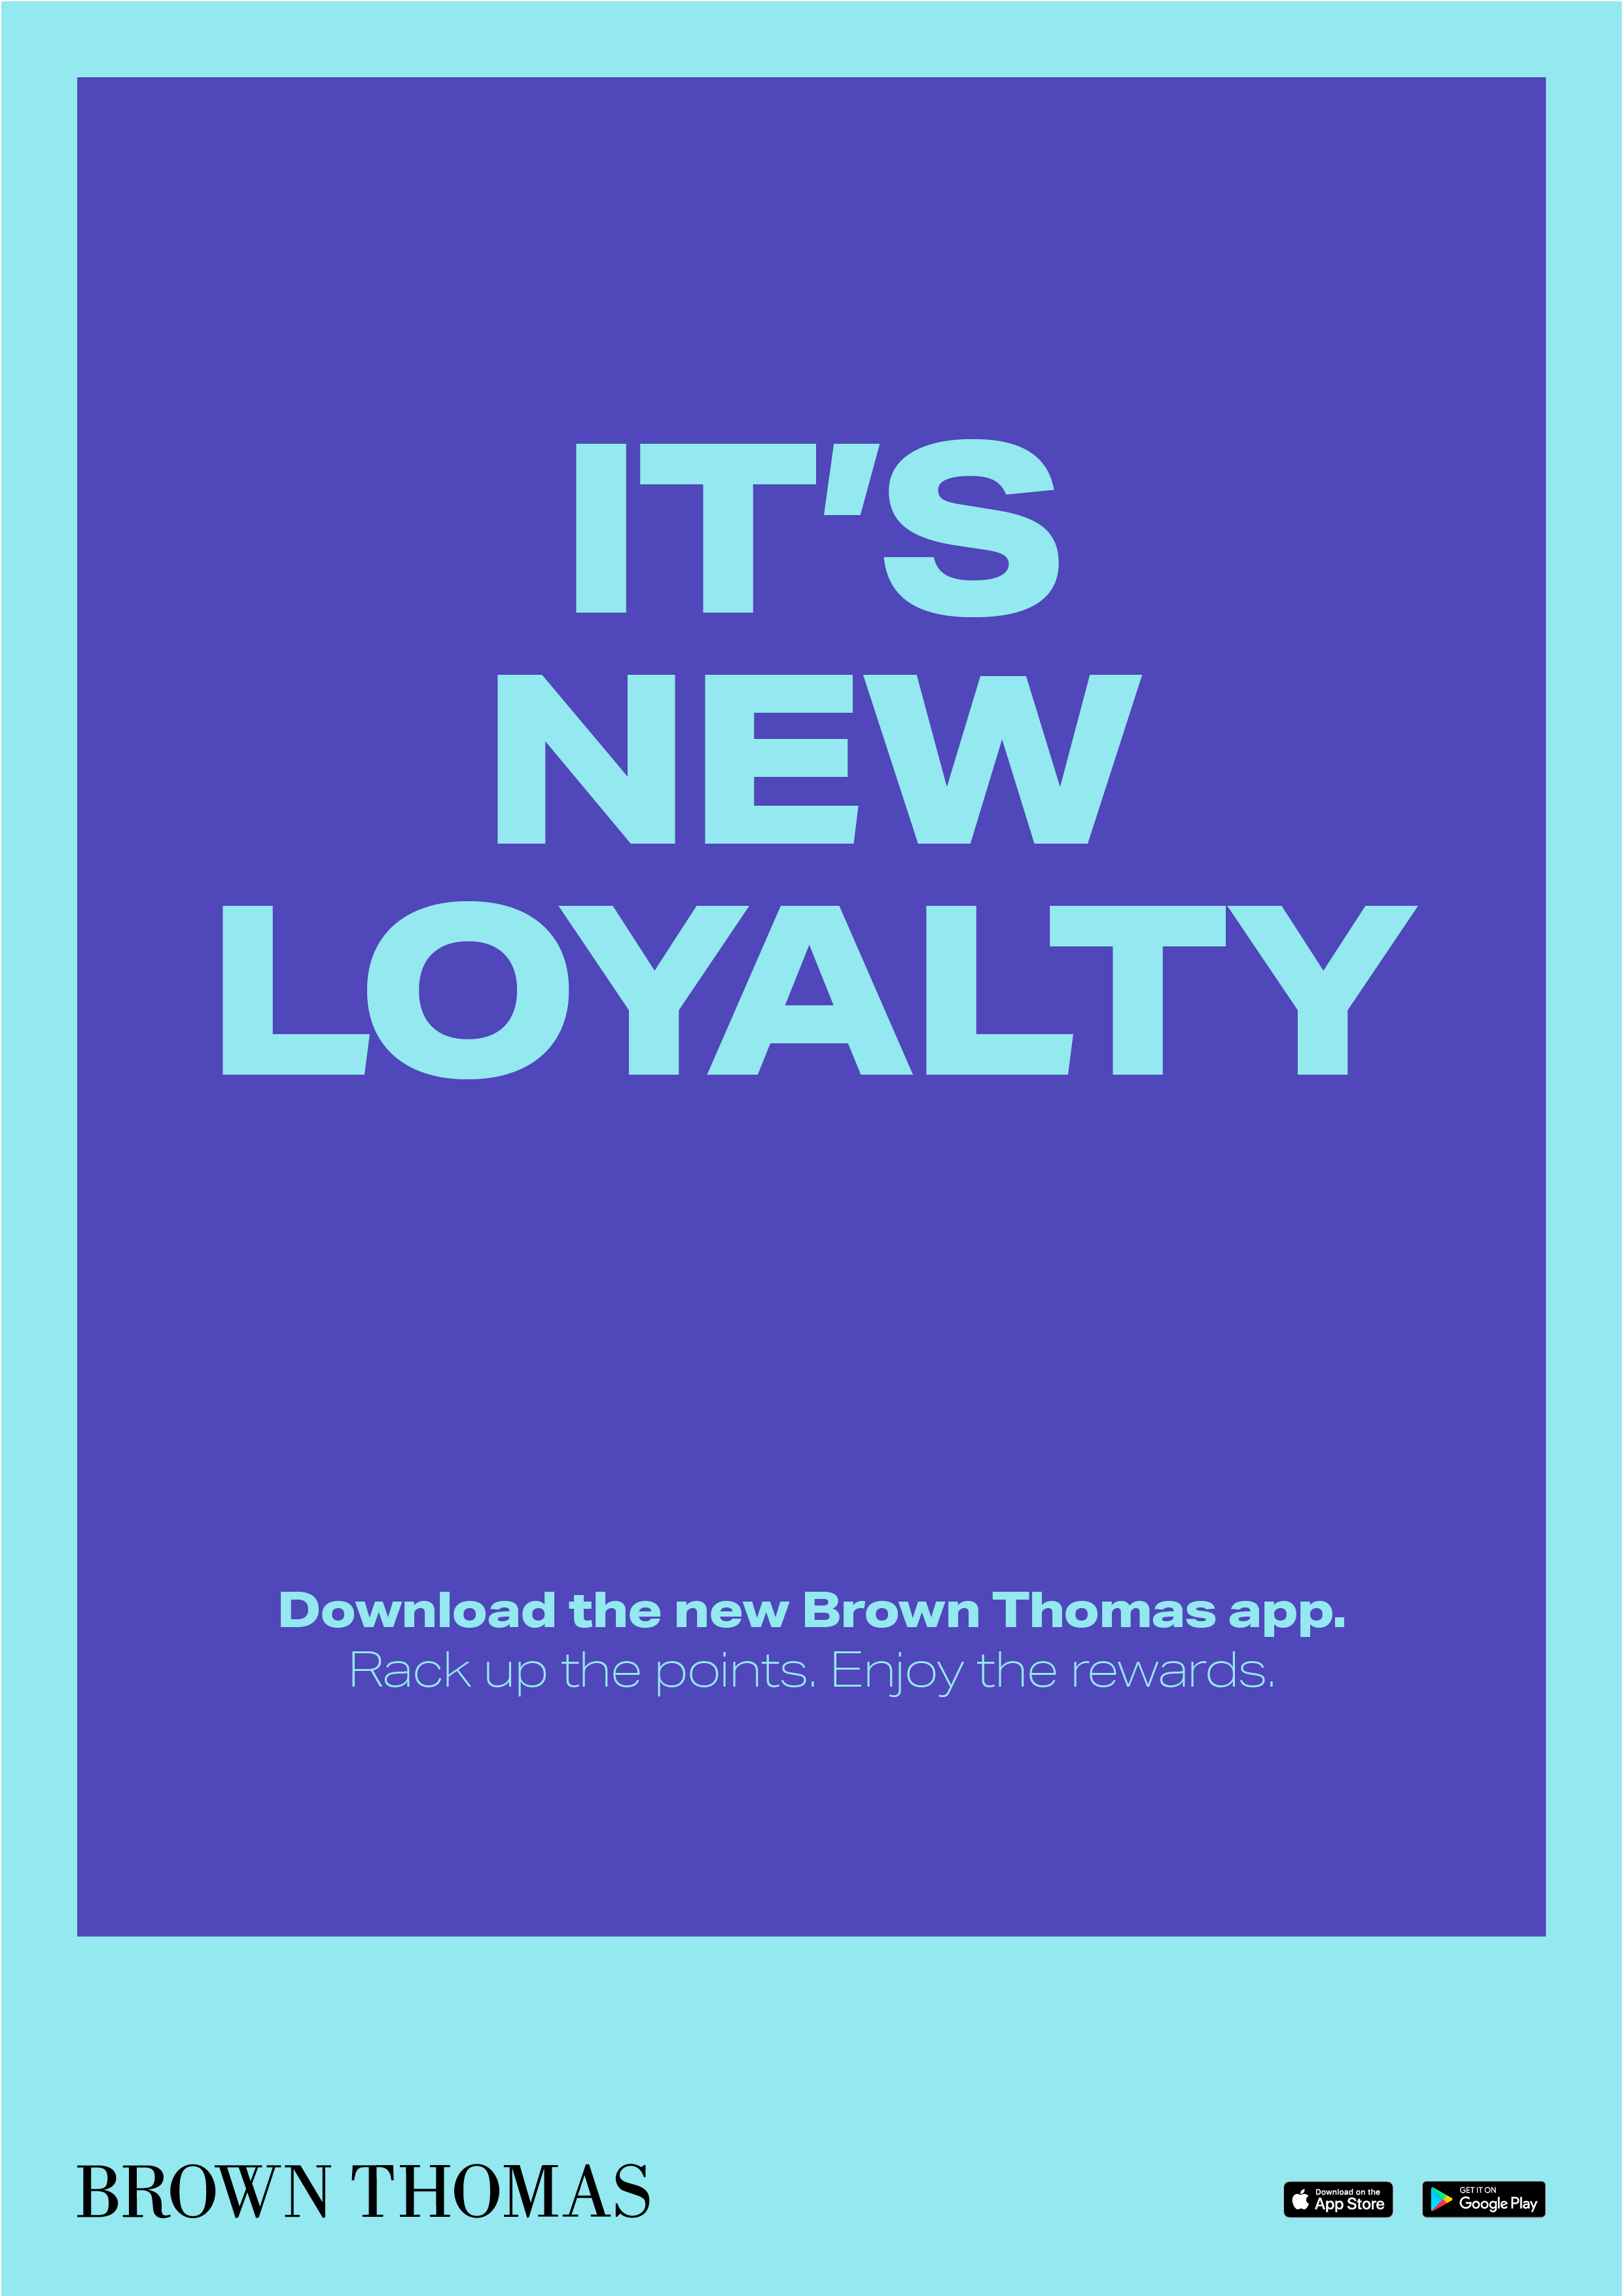 Together We Create_Brown Thomas Loyalty_Ad10.png